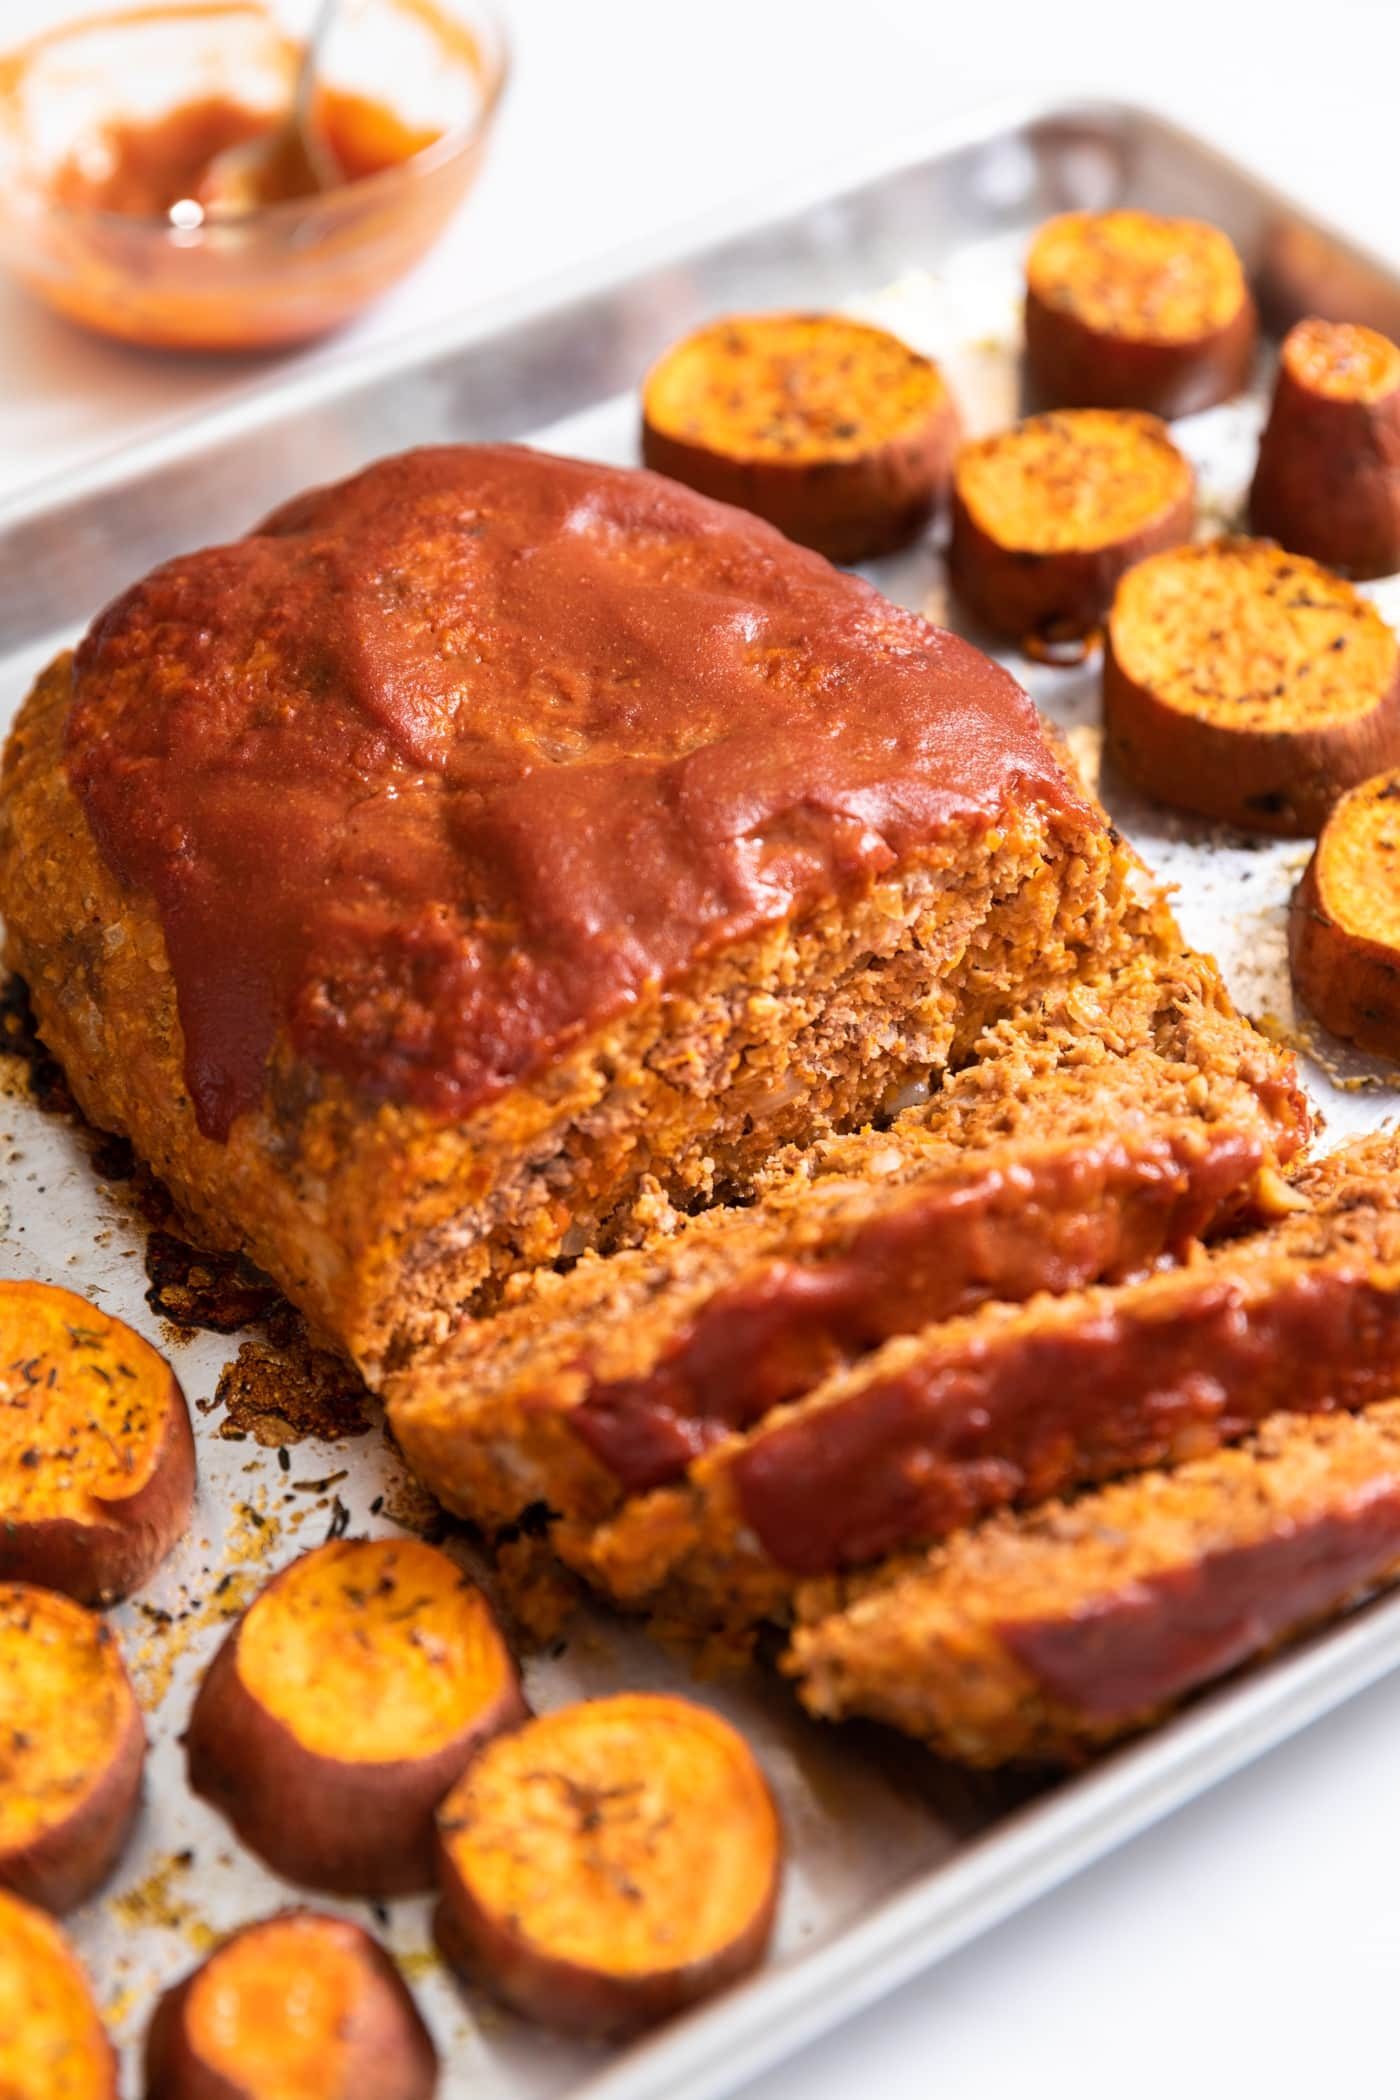 Meatloaf covered with red ketchup on top with slices laying on sheet pan with orange colored sweet potatoes all around